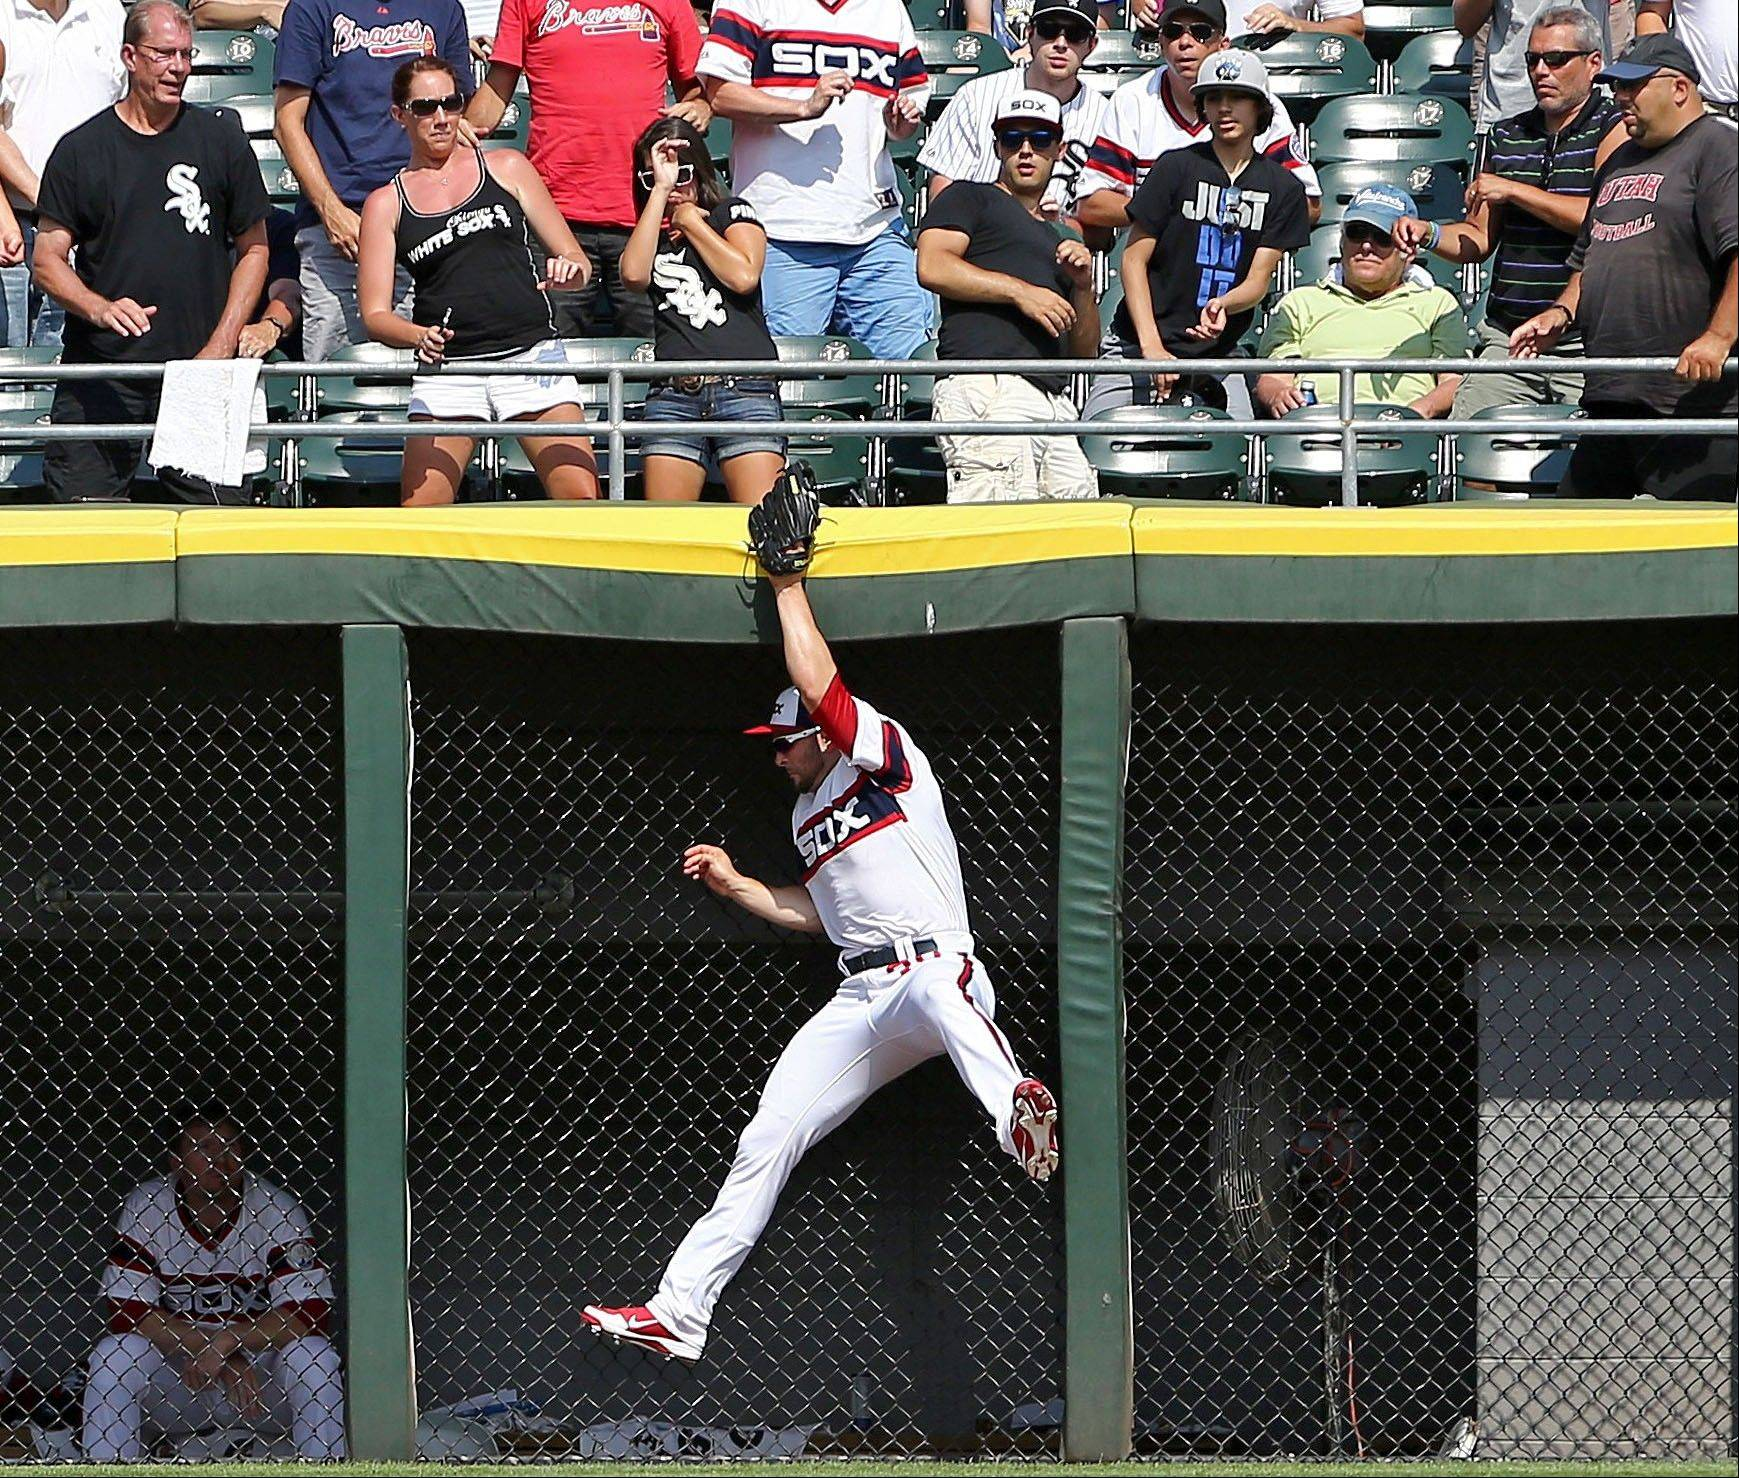 White Sox put it all together to stop Braves